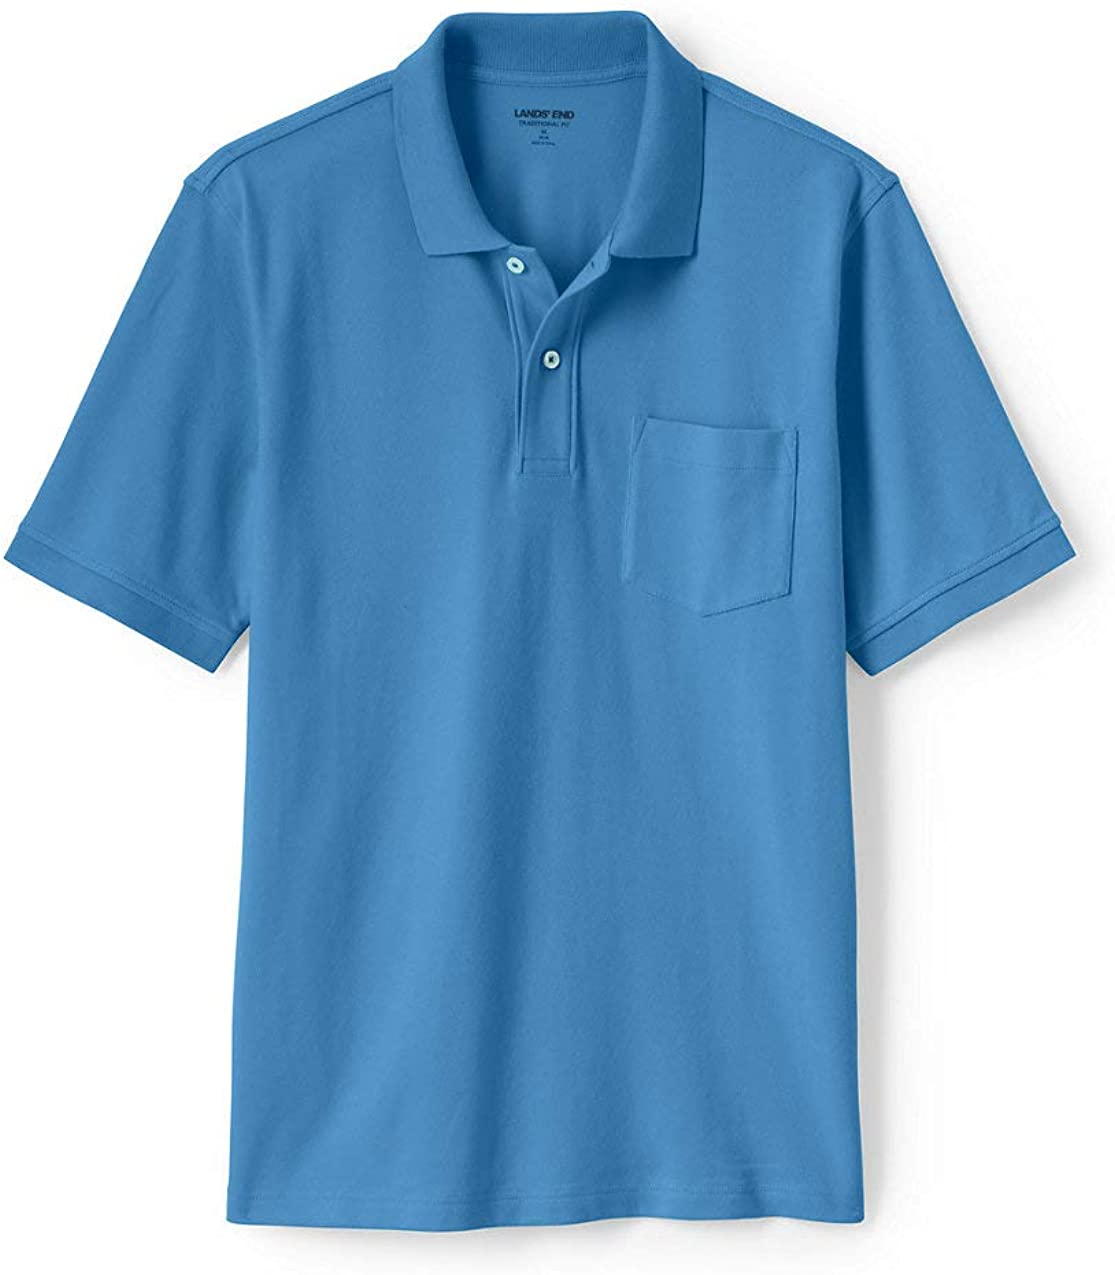 Lands End Mens Short Sleeve Comfort First Solid Mesh Polo with Pocket